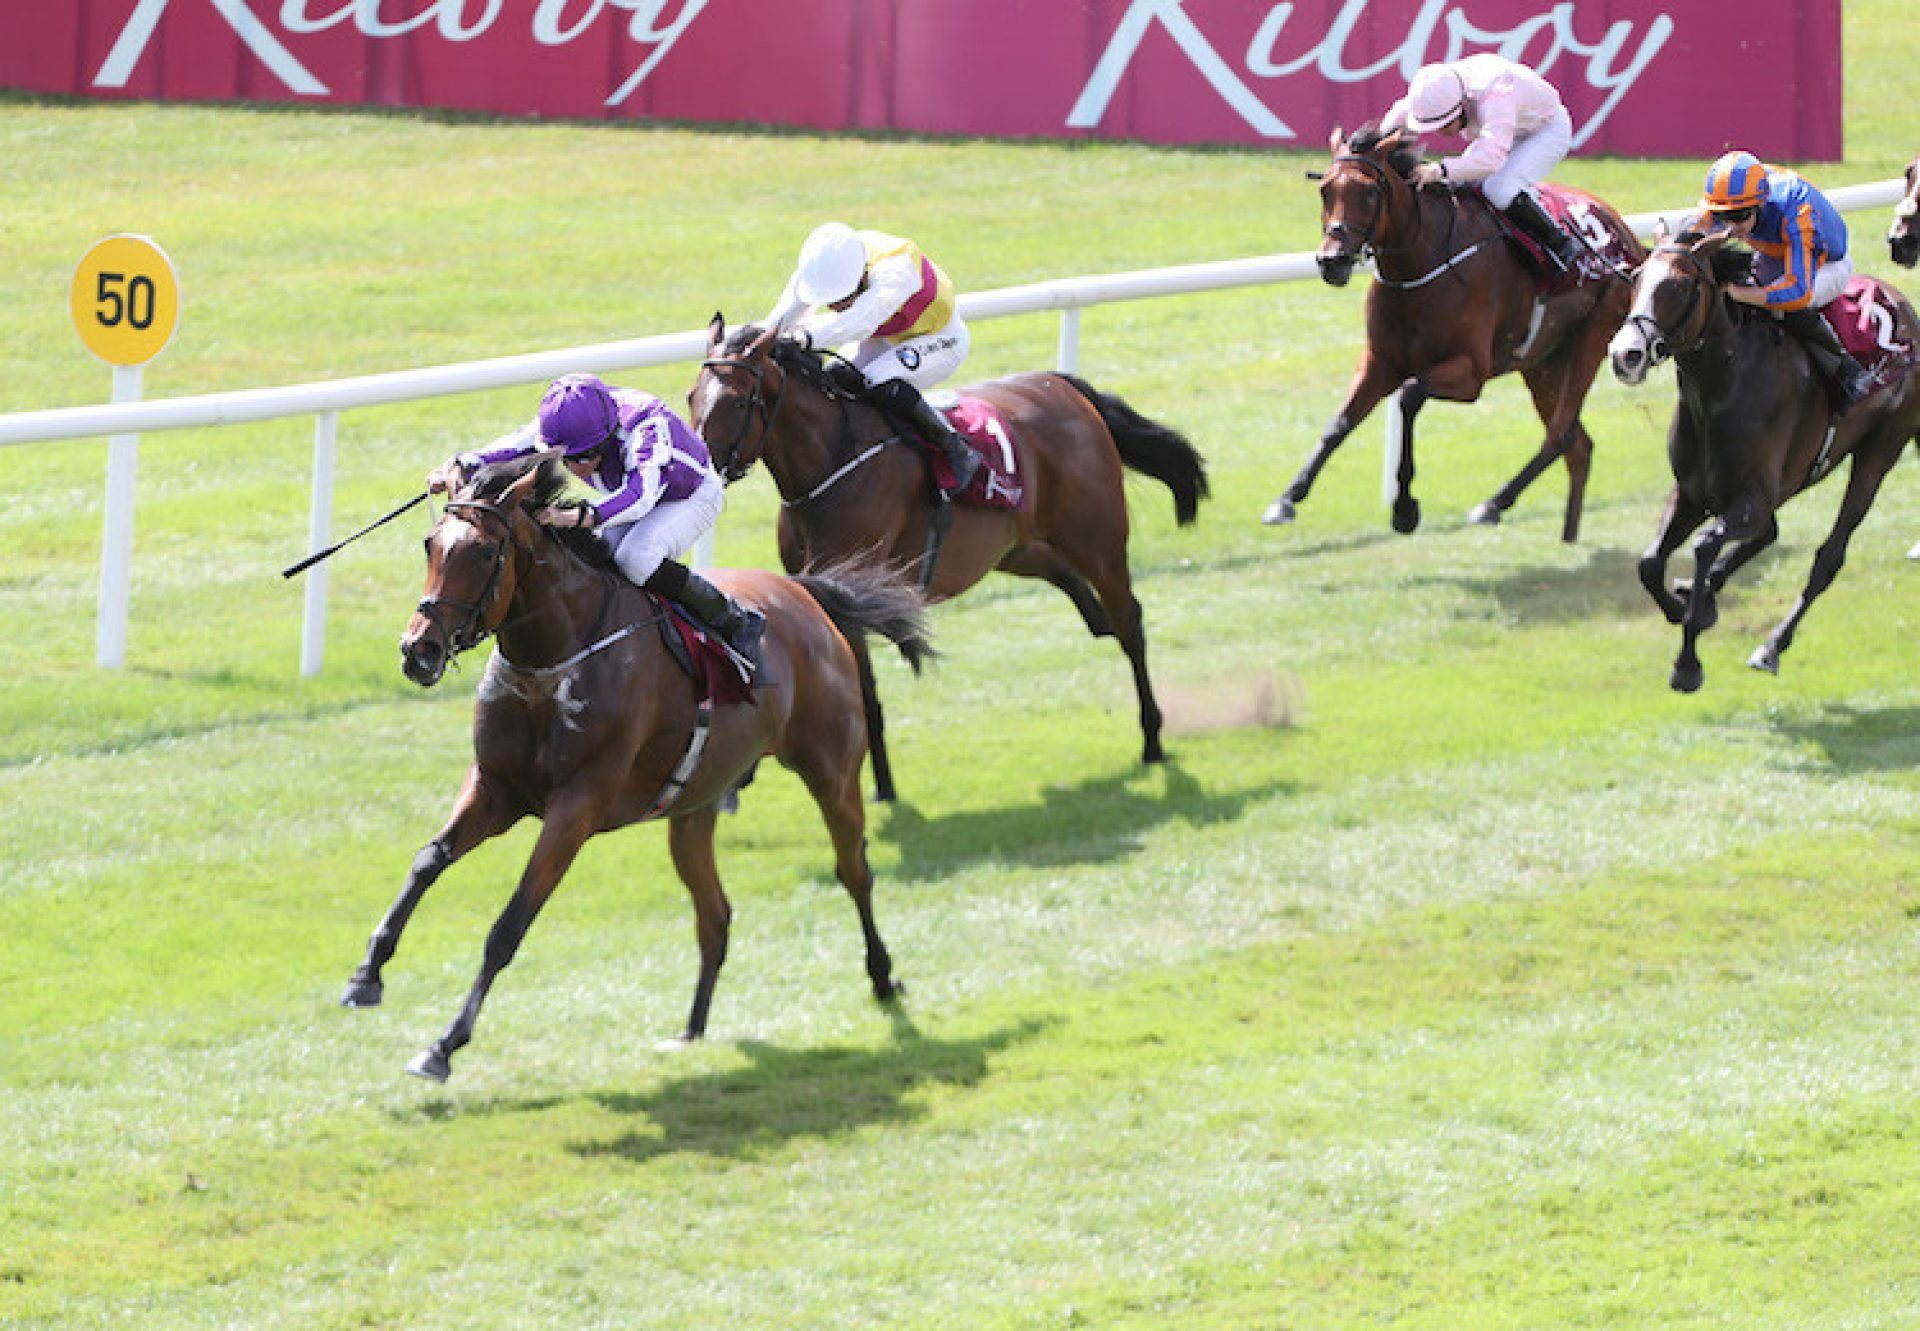 Magical (Galileo) winning the G2 Kilboy Estate Stakes at the Curragh